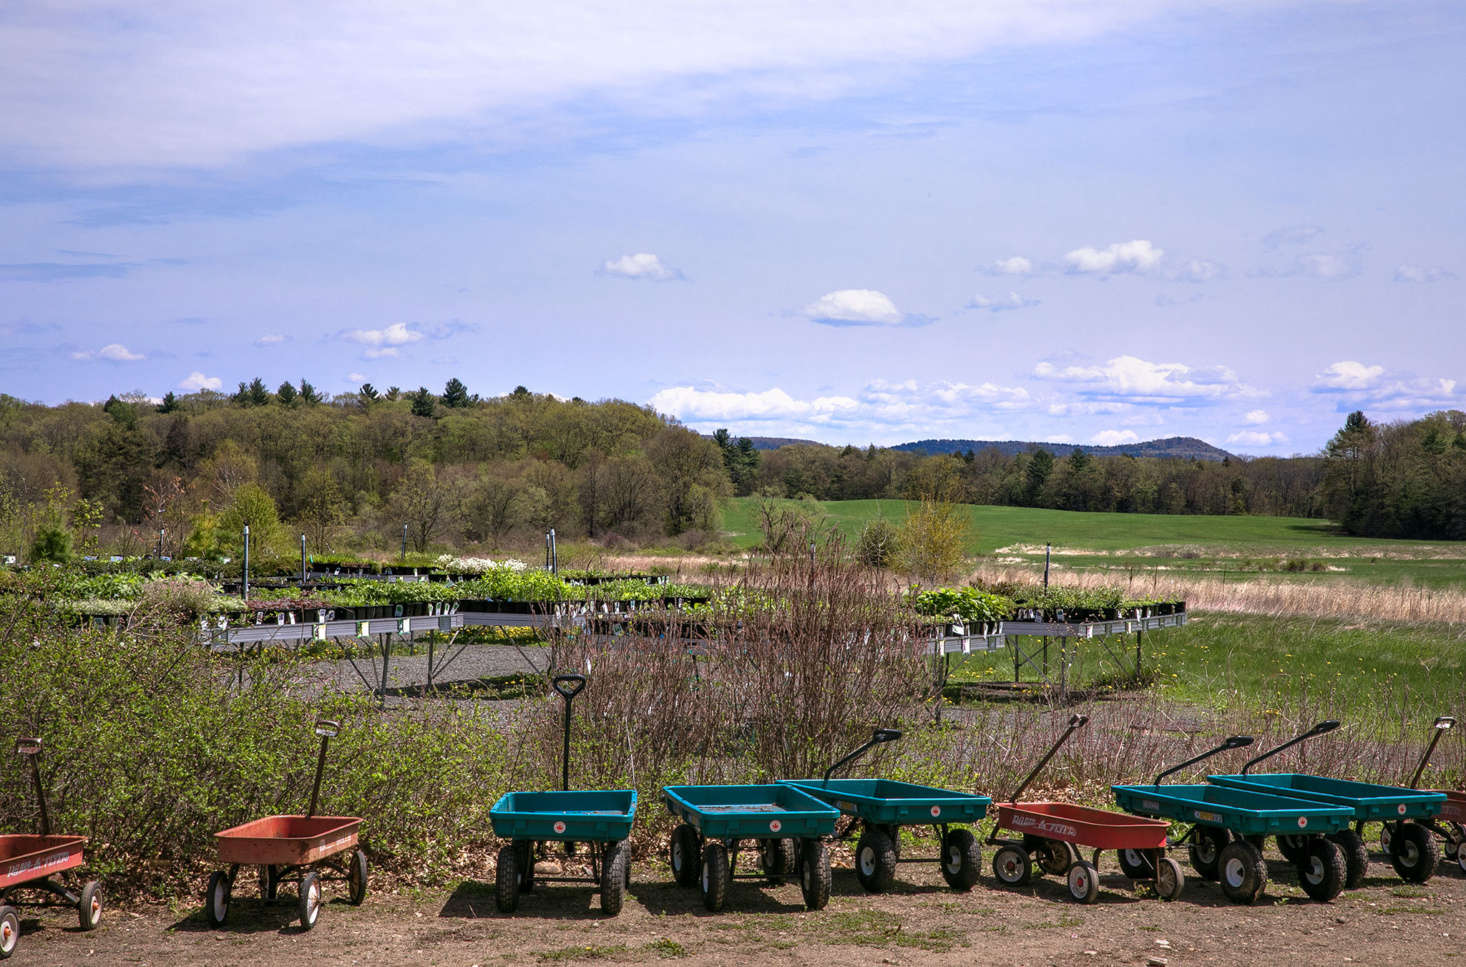 Outside the main building, which overlooks the rolling hills of the Pioneer Valley, carts await shoppers. Beyond the retail area and greenhouse, wild fields are used as native pollinator habitats and for seed collection.